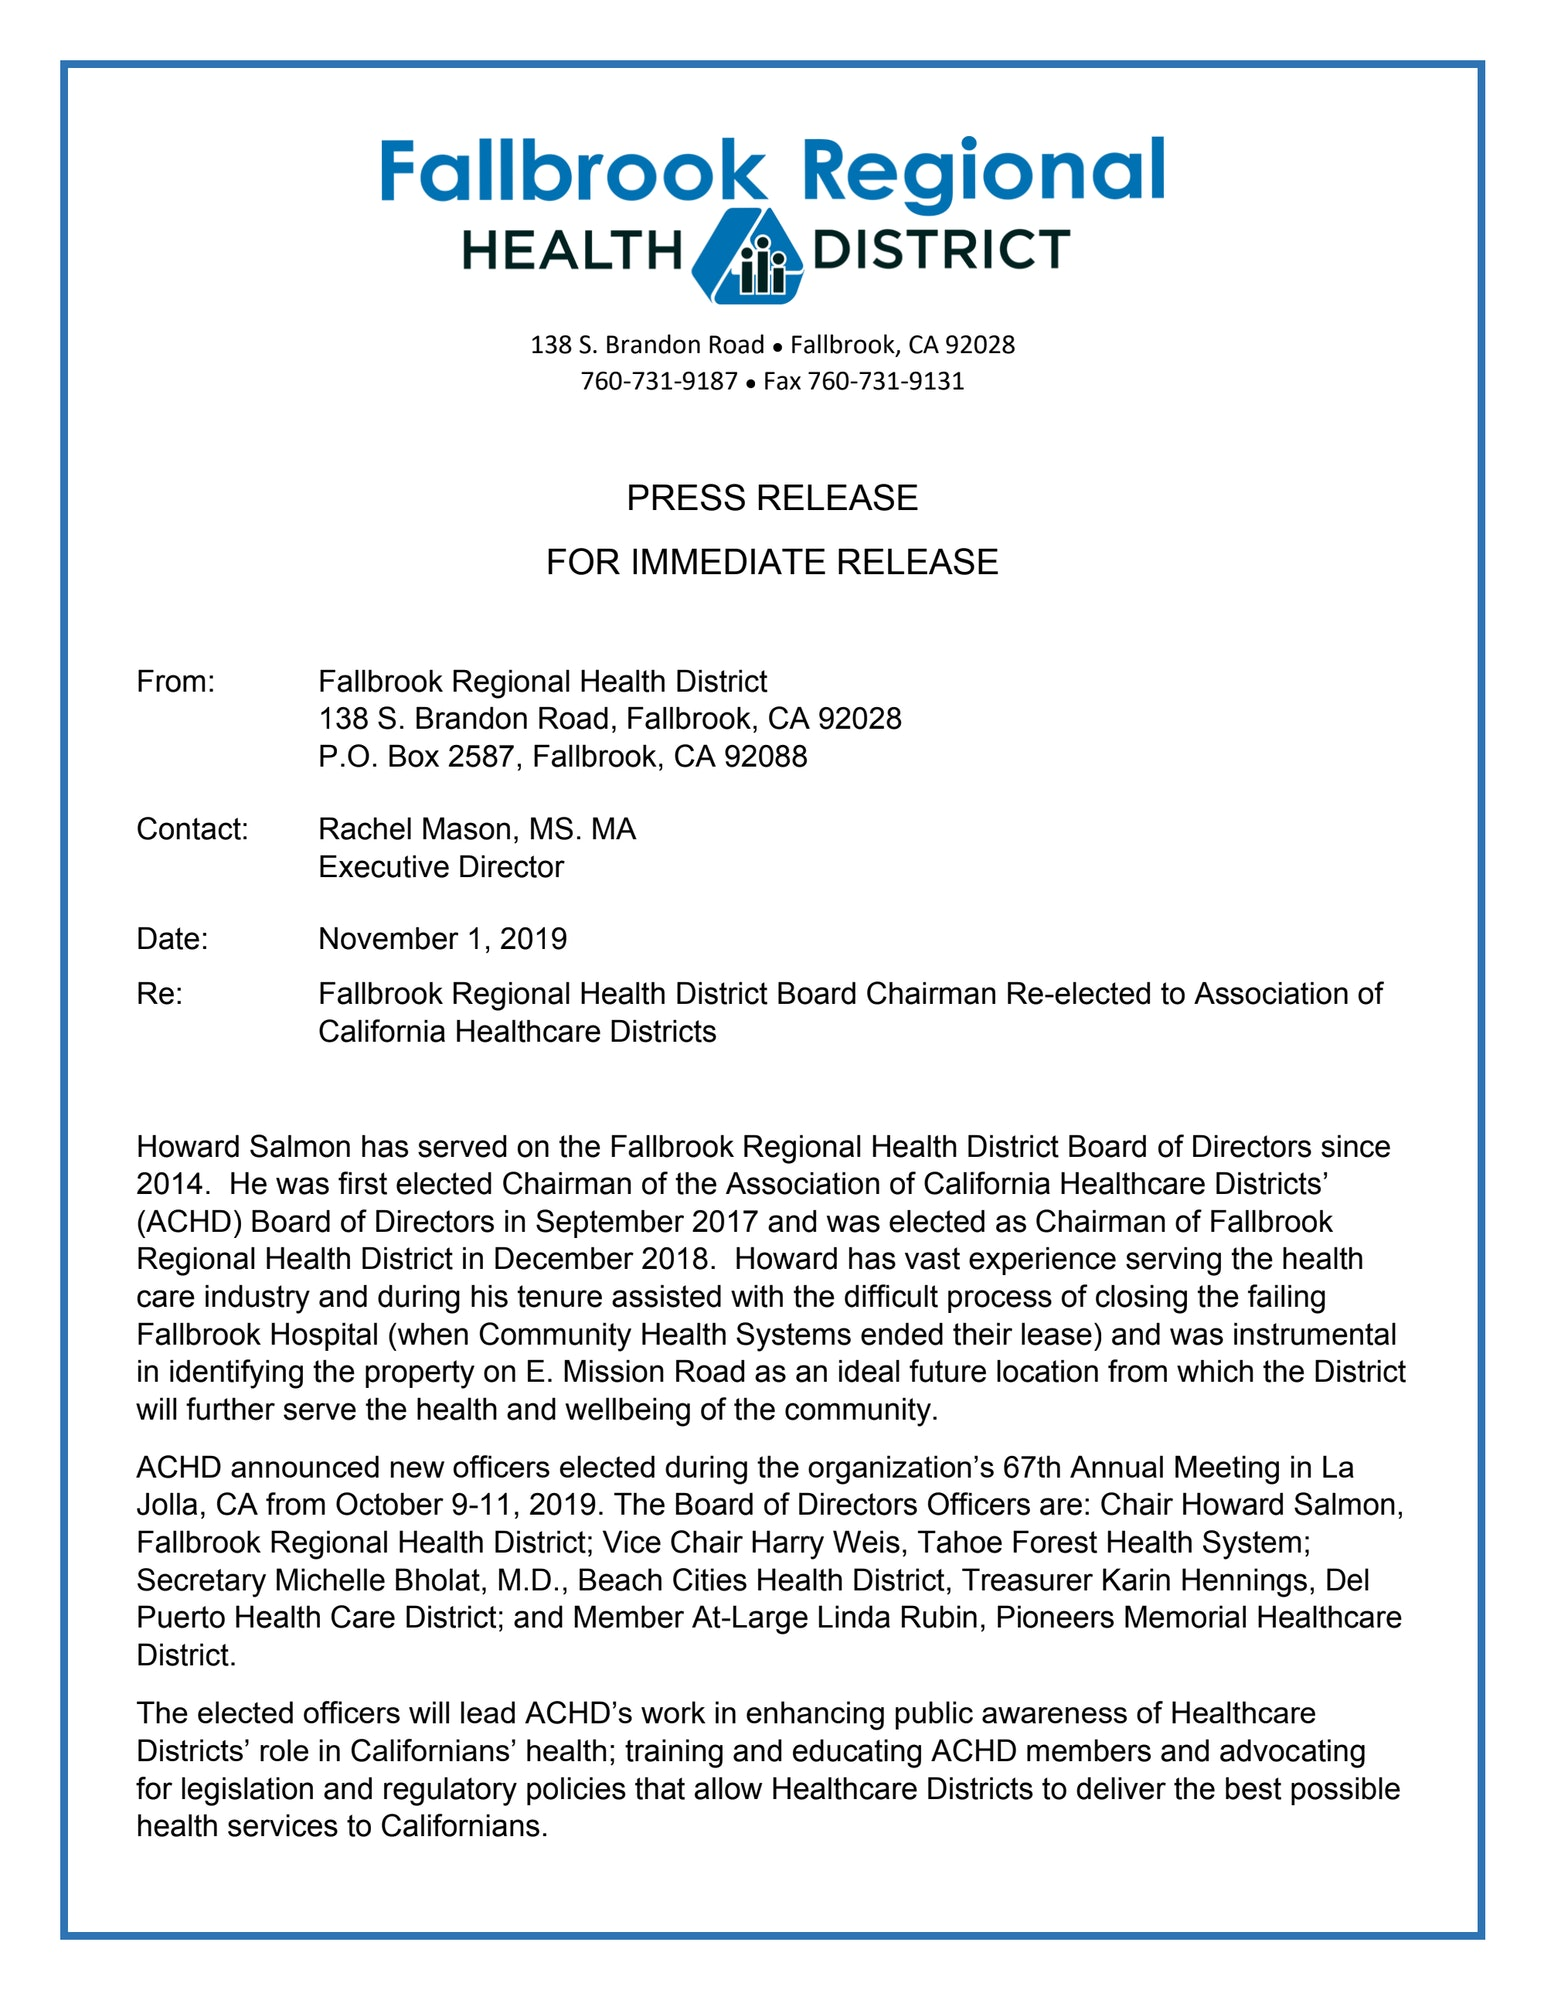 November 1, 2019. Fallbrook Regional Health District Board Chairman Re-elected to Association of California Healthcare Districts. Howard Salmon has served on the Fallbrook Regional Health District Board of Directors since 2014.  He was first elected Chairman of the Association of California Healthcare Districts' (ACHD) Board of Directors in September 2017 and was elected as Chairman of Fallbrook Regional Health District in December 2018.  Howard has vast experience serving the health care industry and during his tenure assisted with the difficult process of closing the failing Fallbrook Hospital (when Community Health Systems ended their lease) and was instrumental in identifying the property on E. Mission Road as an ideal future location from which the District will further serve the health and wellbeing of the community.   ACHD announced new officers elected during the organization's 67th Annual Meeting in La Jolla, CA from October 9-11, 2019. The Board of Directors Officers are: Chair Howard Salmon, Fallbrook Regional Health District; Vice Chair Harry Weis, Tahoe Forest Health System; Secretary Michelle Bholat, M.D., Beach Cities Health District, Treasurer Karin Hennings, Del Puerto Health Care District; and Member At-Large Linda Rubin, Pioneers Memorial Healthcare District. The elected officers will lead ACHD's work in enhancing public awareness of Healthcare Districts' role in Californians' health; training and educating ACHD members and advocating for legislation and regulatory policies that allow Healthcare Districts to deliver the best possible health services to Californians.